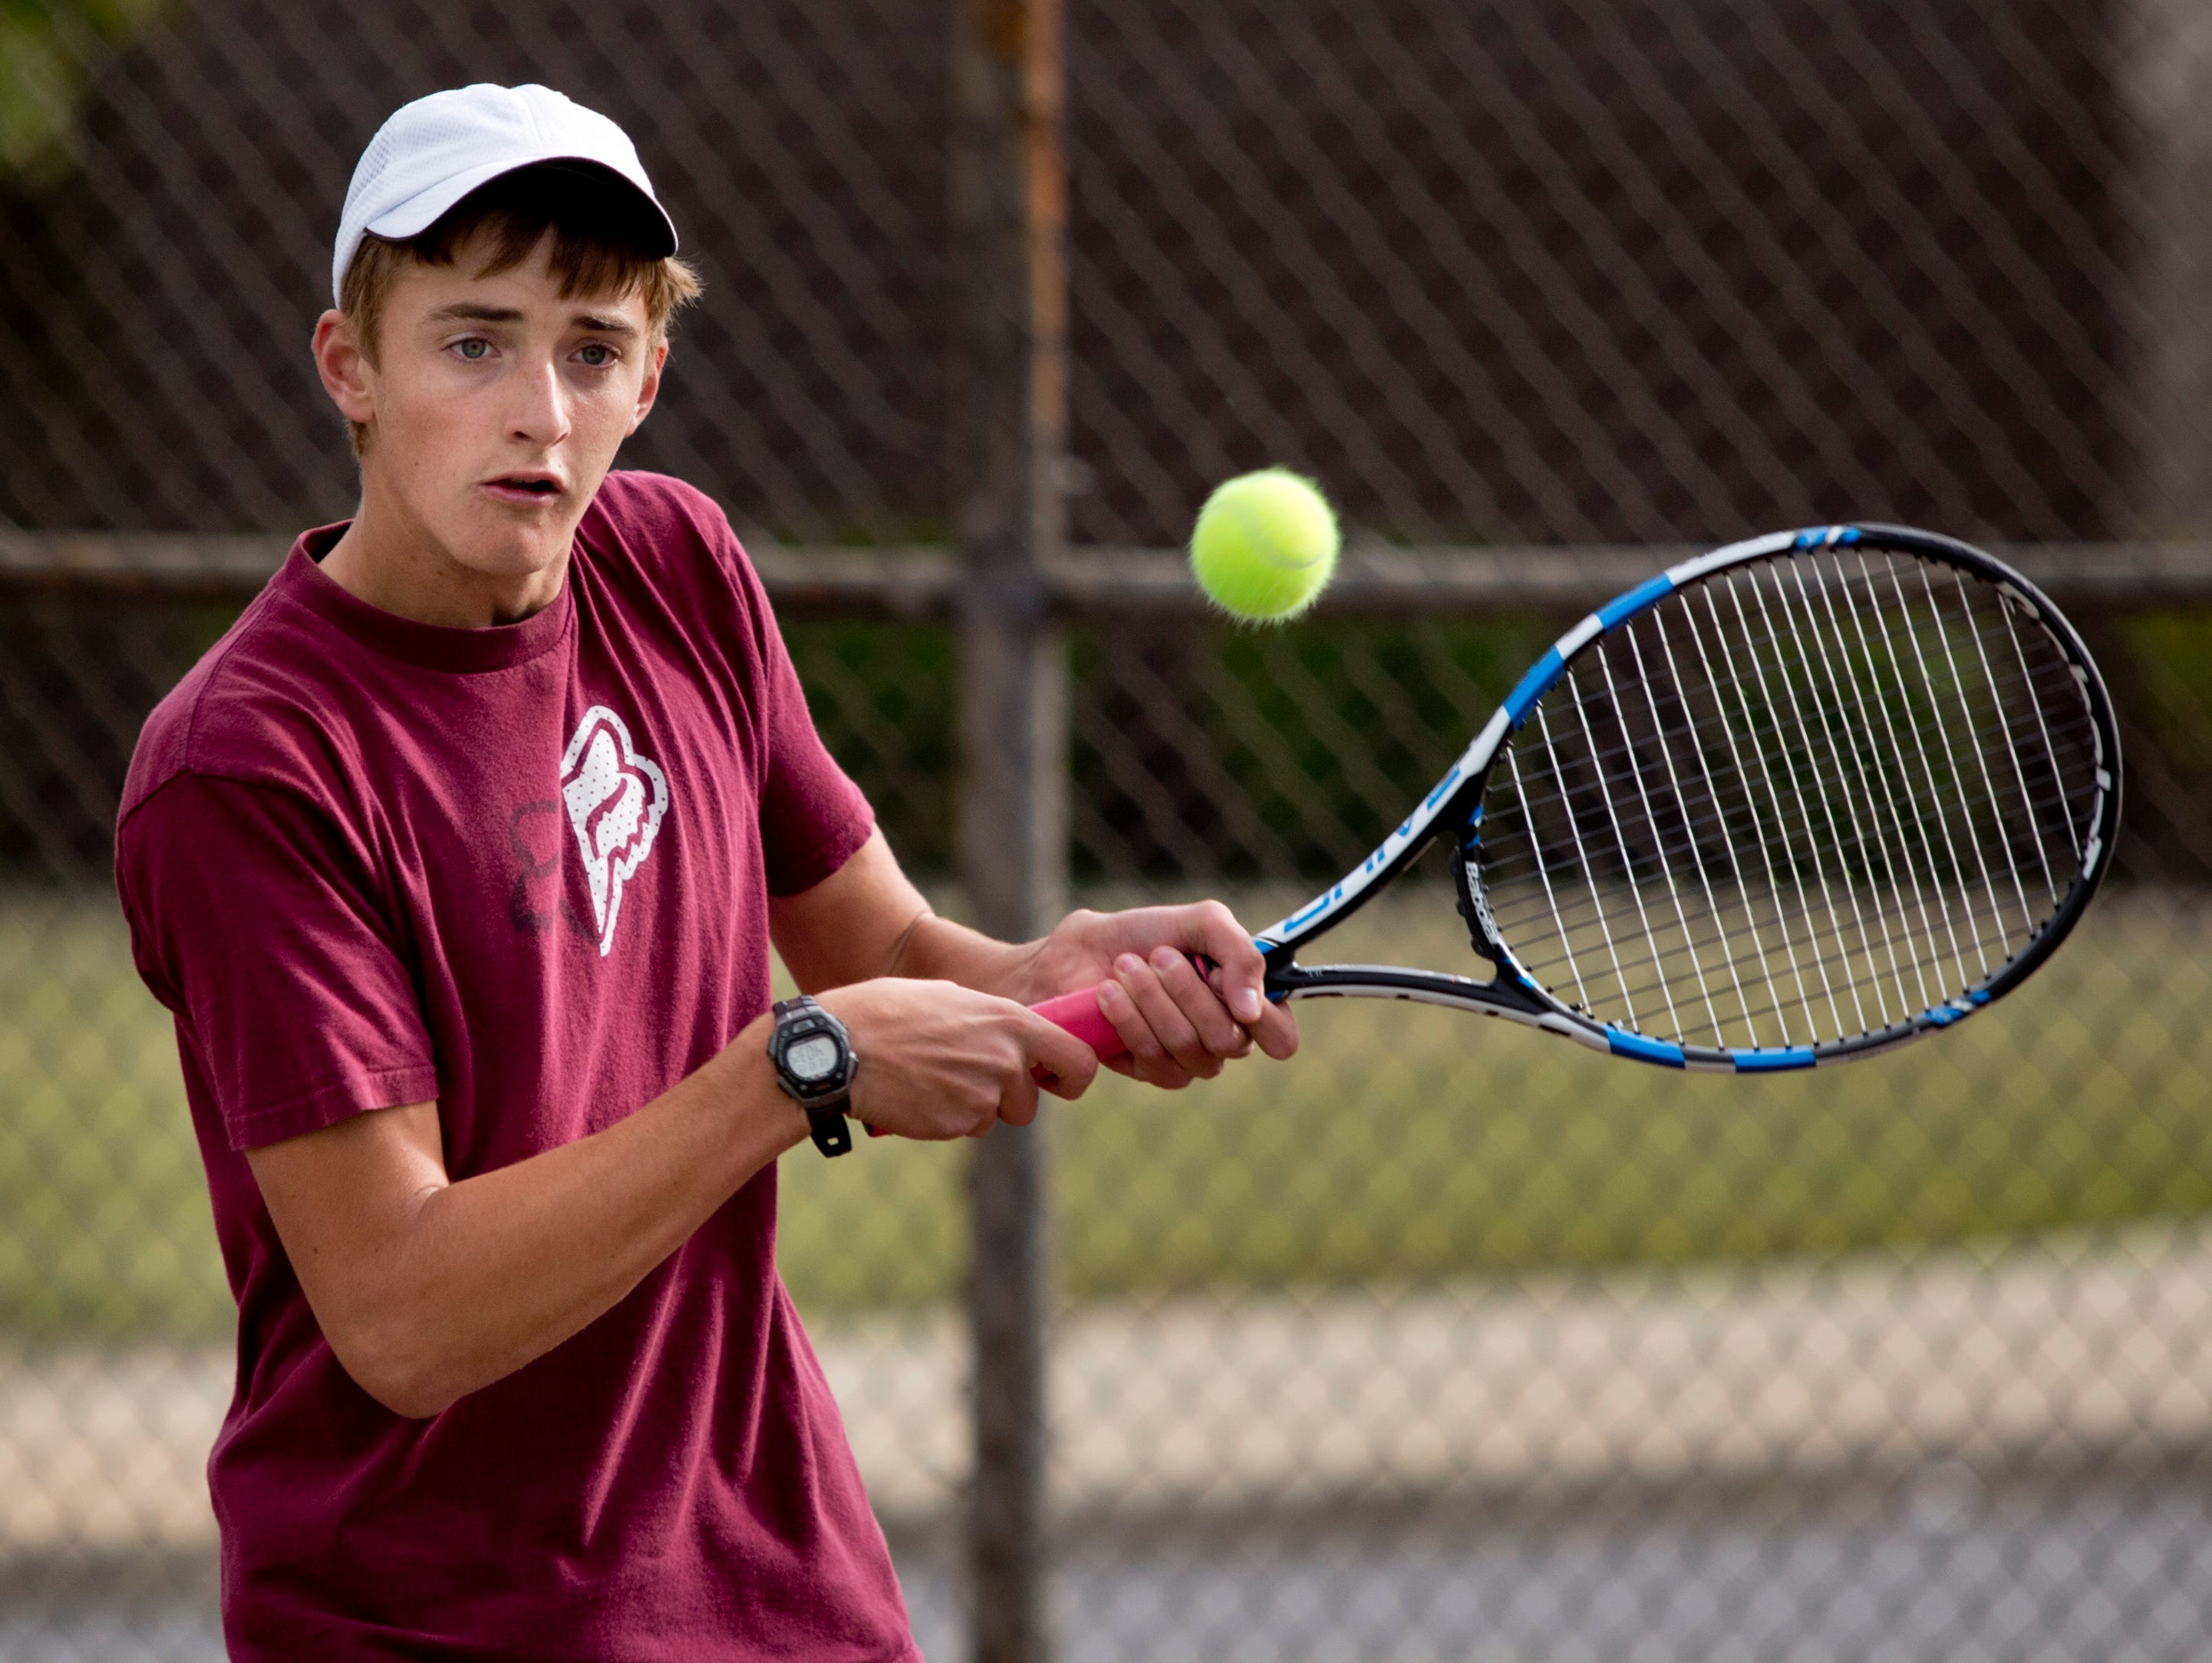 Junior Devon LaHaie returns the ball during tennis practice Tuesday, October 13, 2015 at Armada High School.